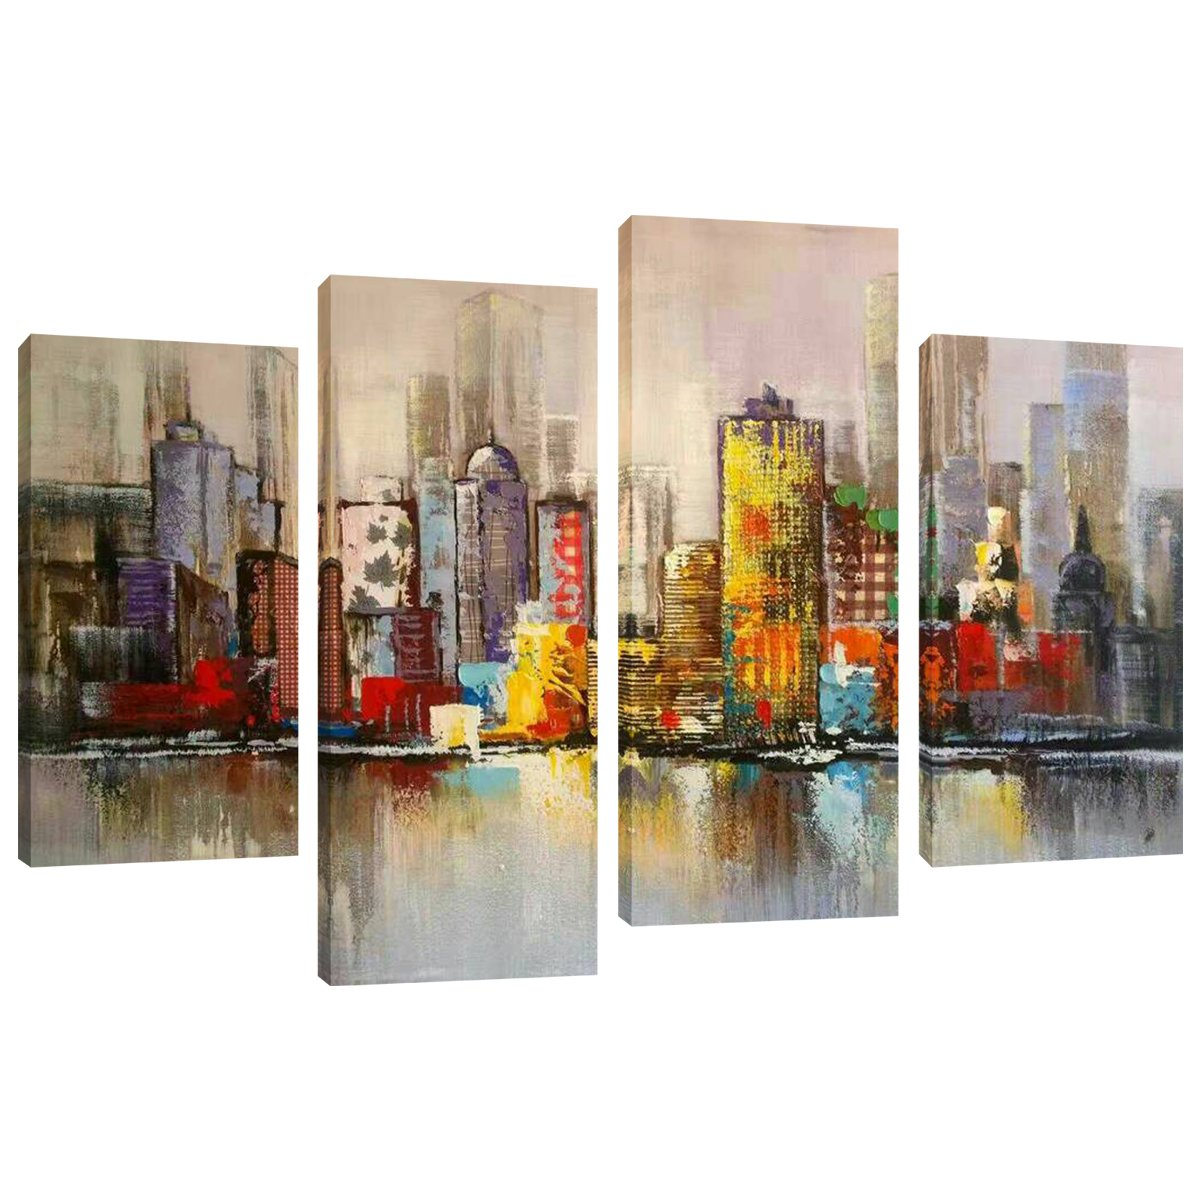 Abstract Canvas Painting New York Colorful City Landscape Picture Printed on Canvas Giclee Artwork Stretched and Framed Wall Art For Home Decor Ready to Hang (Colorful City)